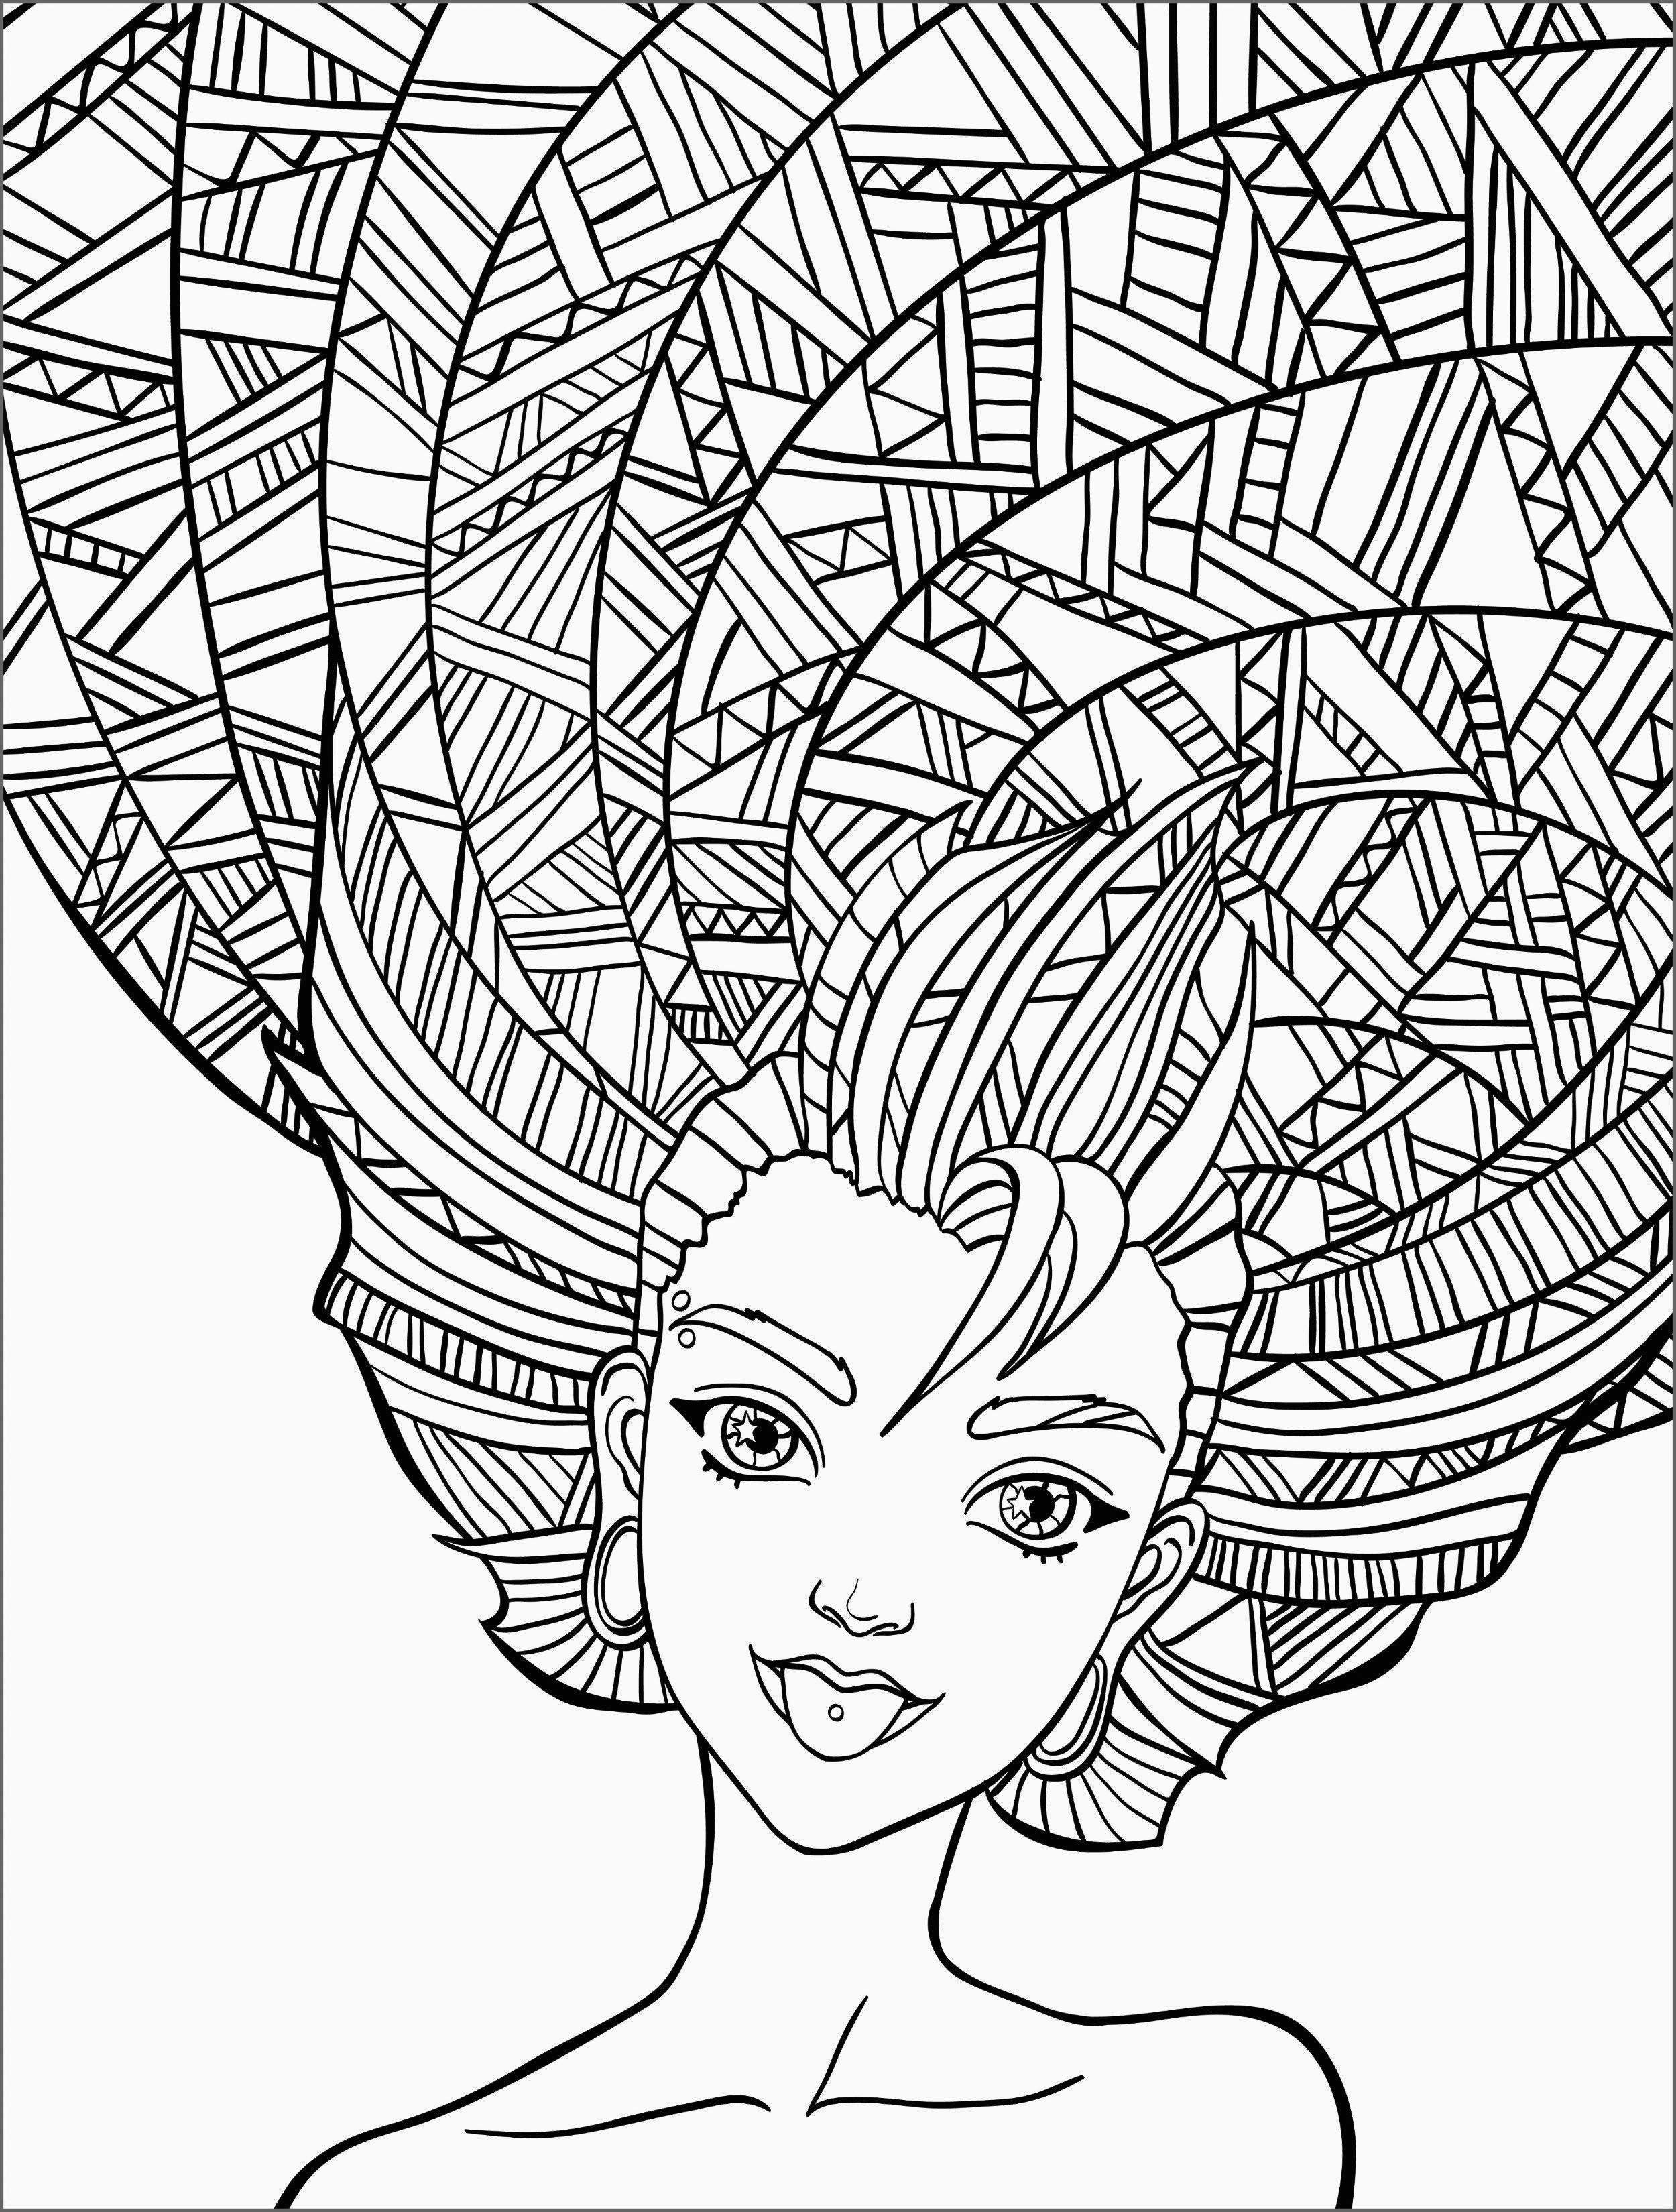 good coloring books for adults coloring pages for adults best coloring pages for kids good for coloring adults books